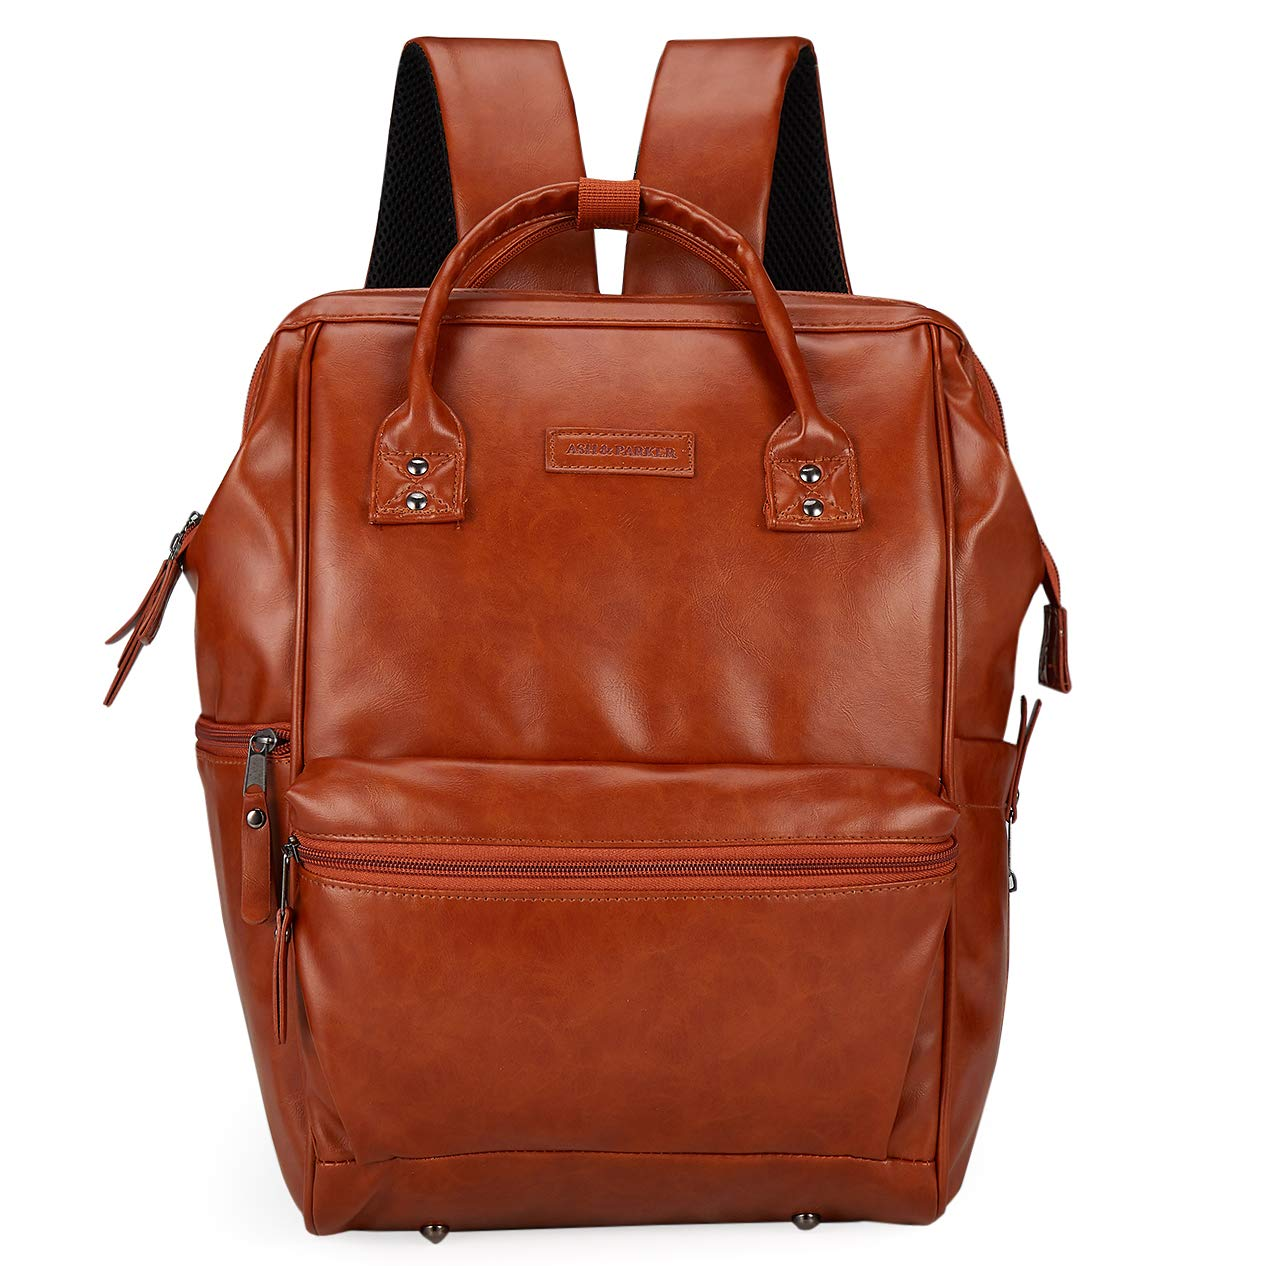 Classic Faux Leather Baby Diaper Bag Backpack, Wide Open Laptop Bag with Stroller Straps, Changing Pad, Multiple Insulated Pockets For Both Moms & Dads Natural Tan Brown